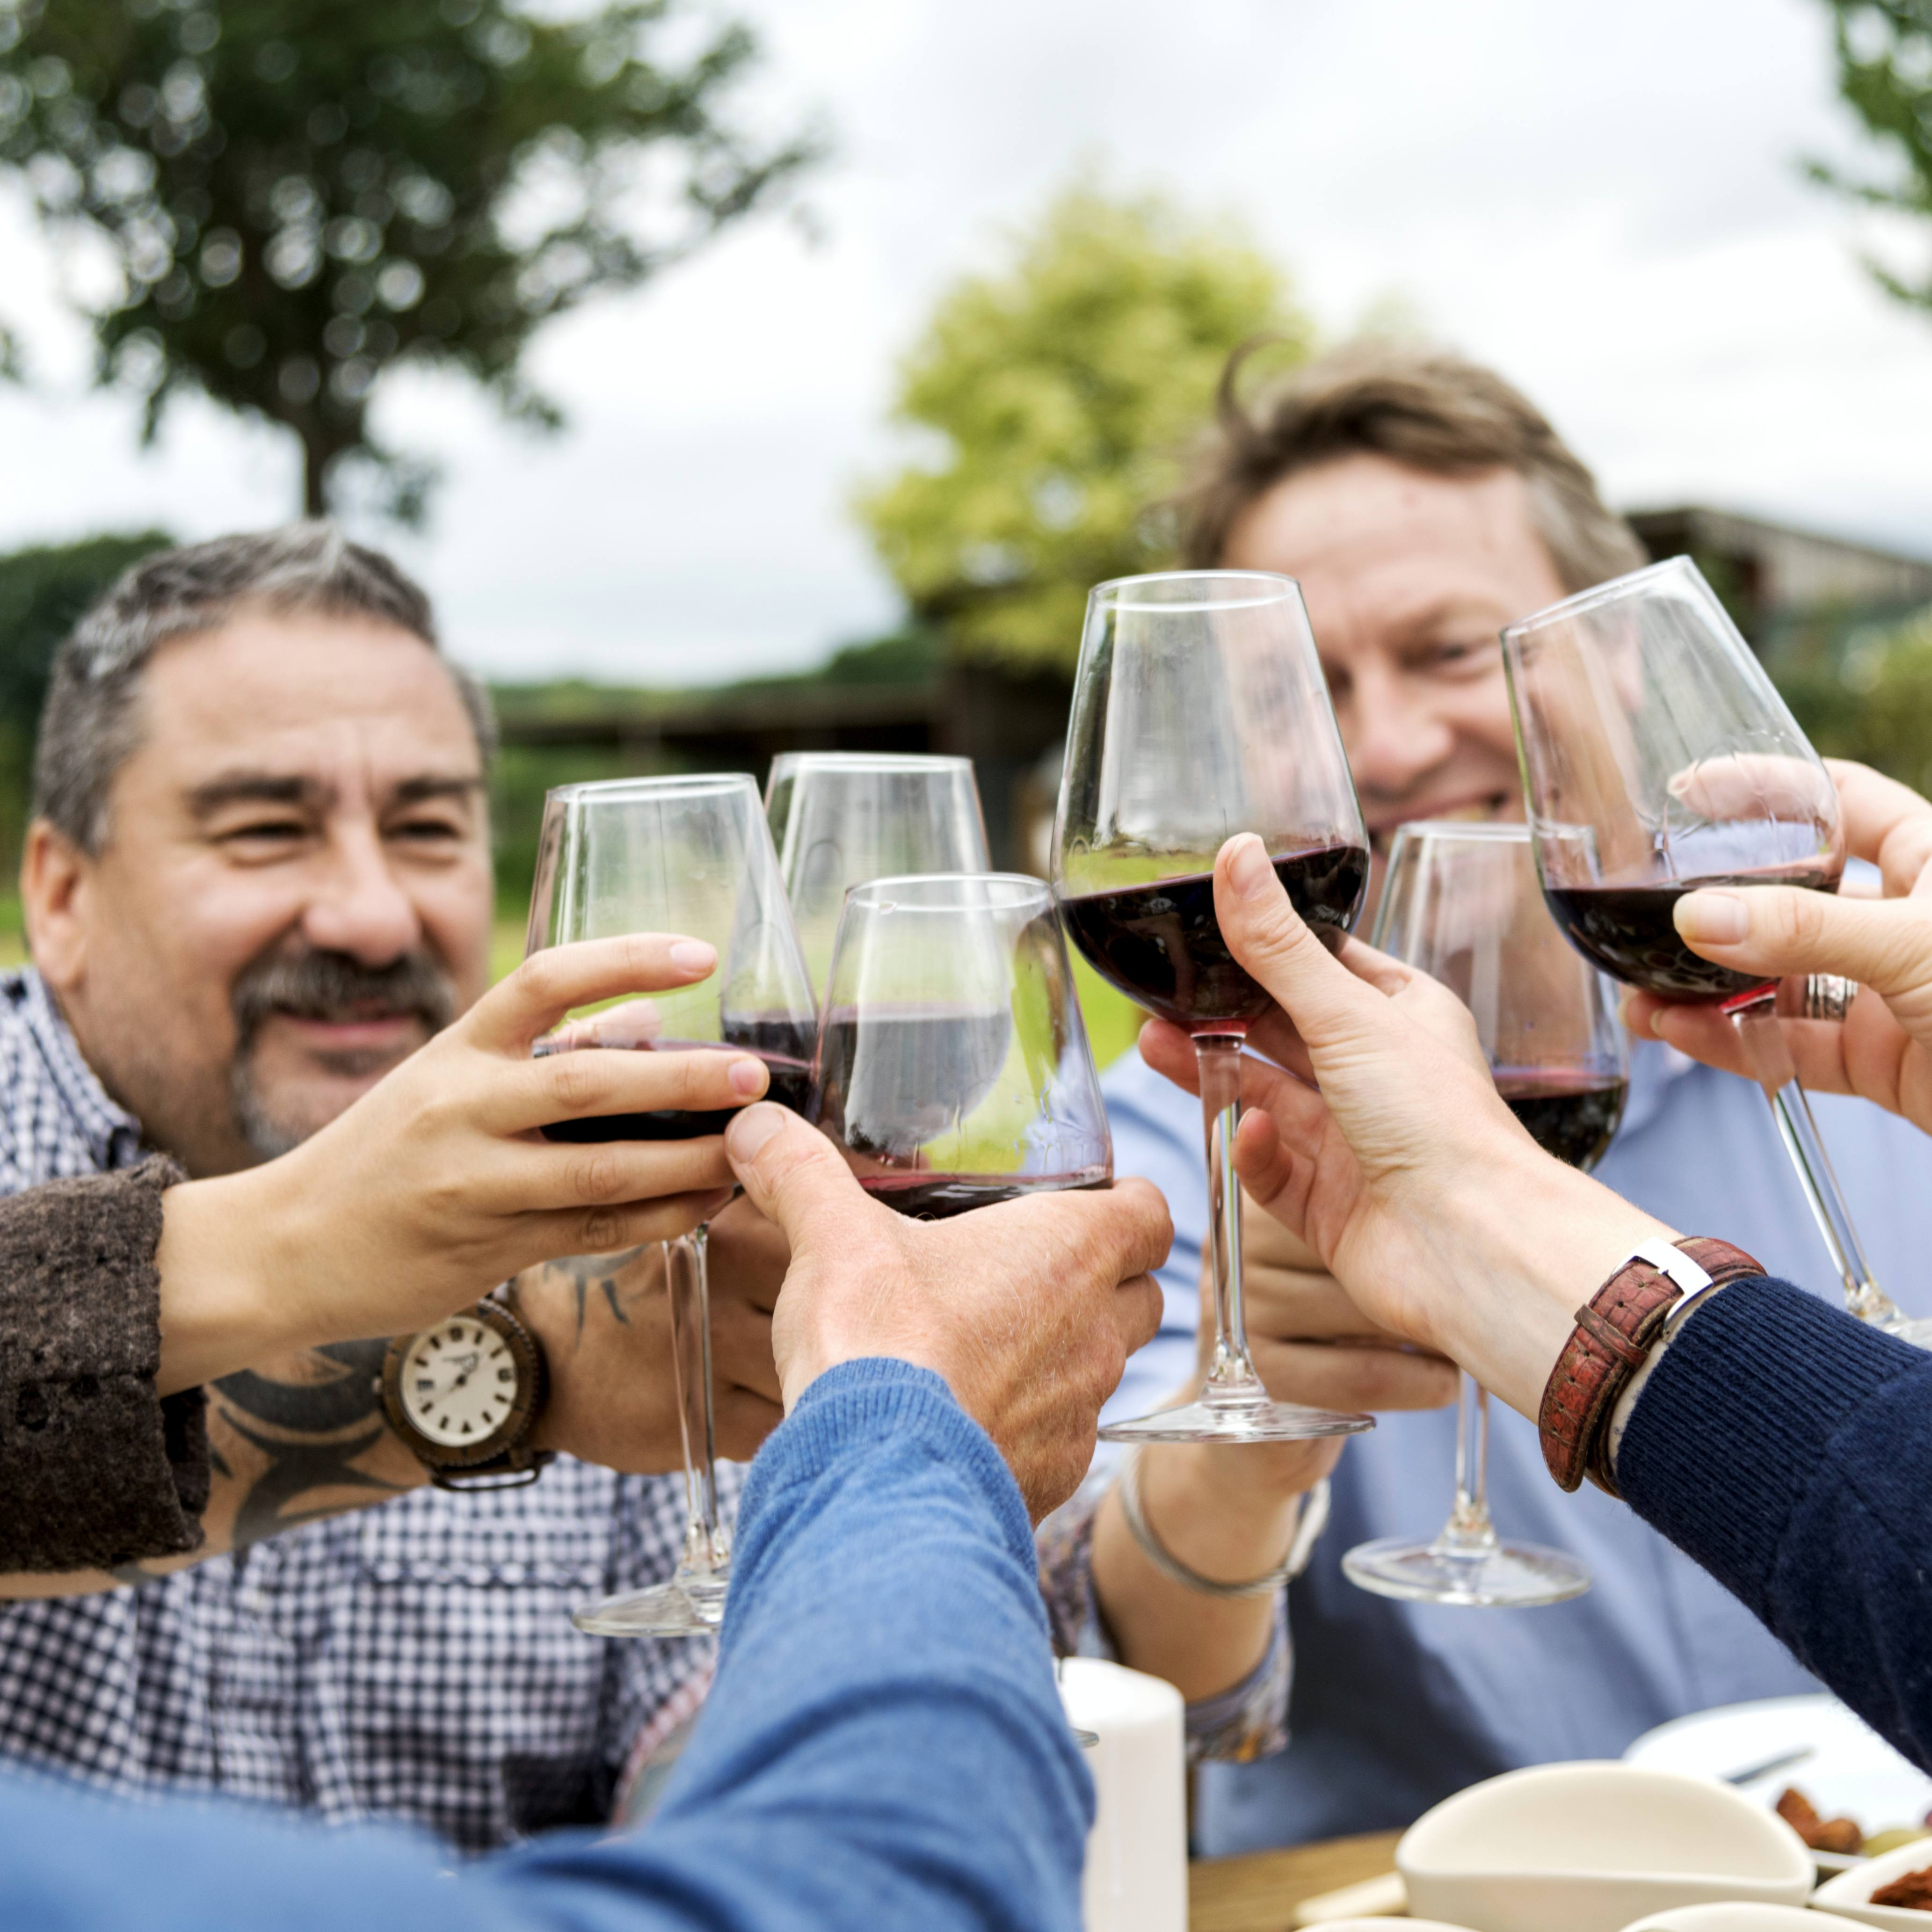 Group of people cheering with glasses of wine